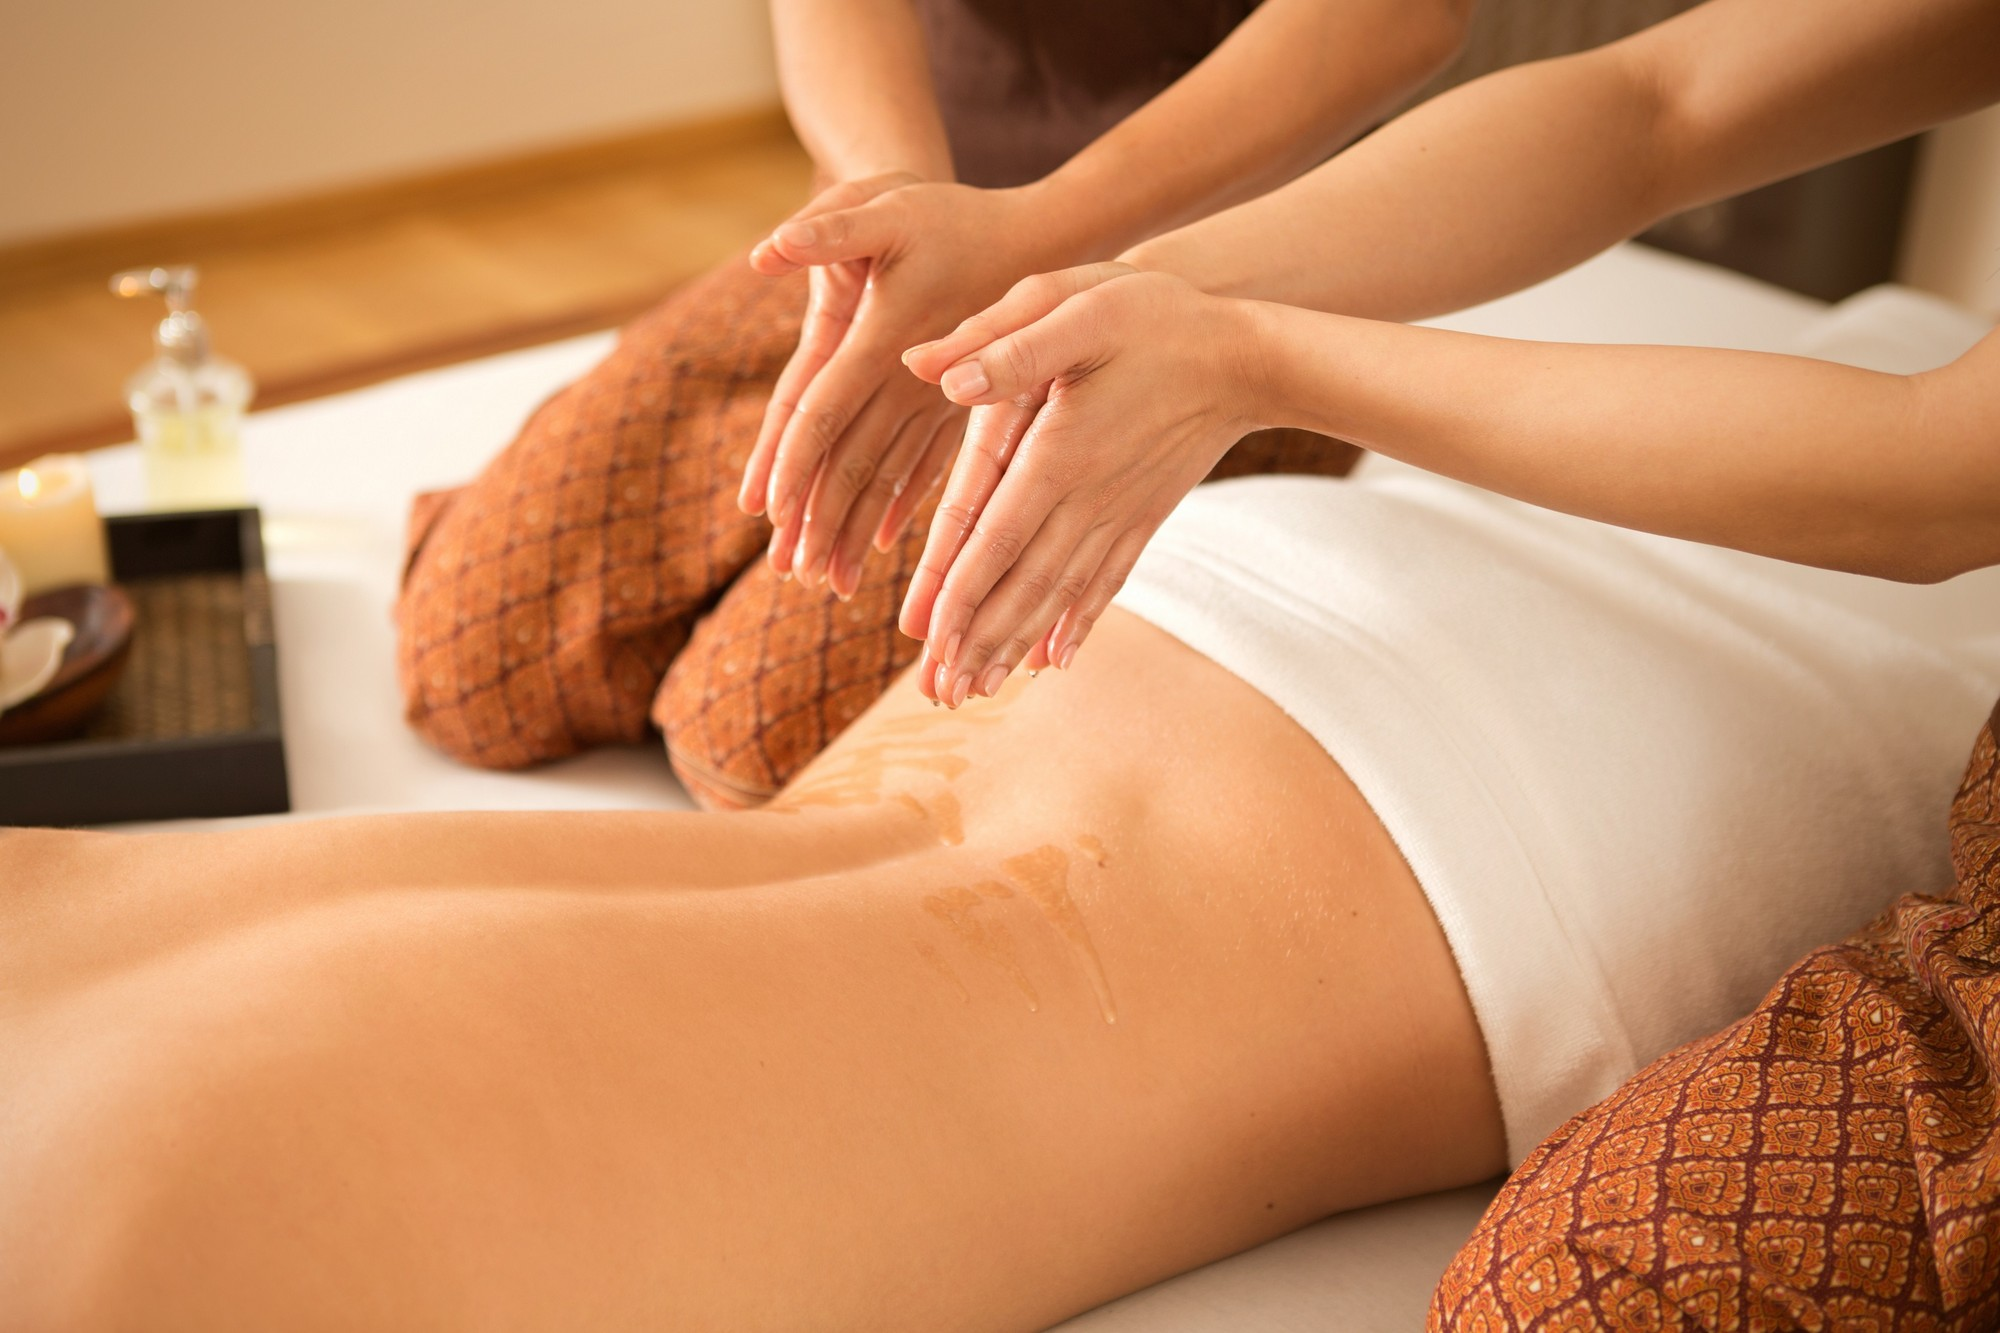 Four Hands Massage Service In Dubai